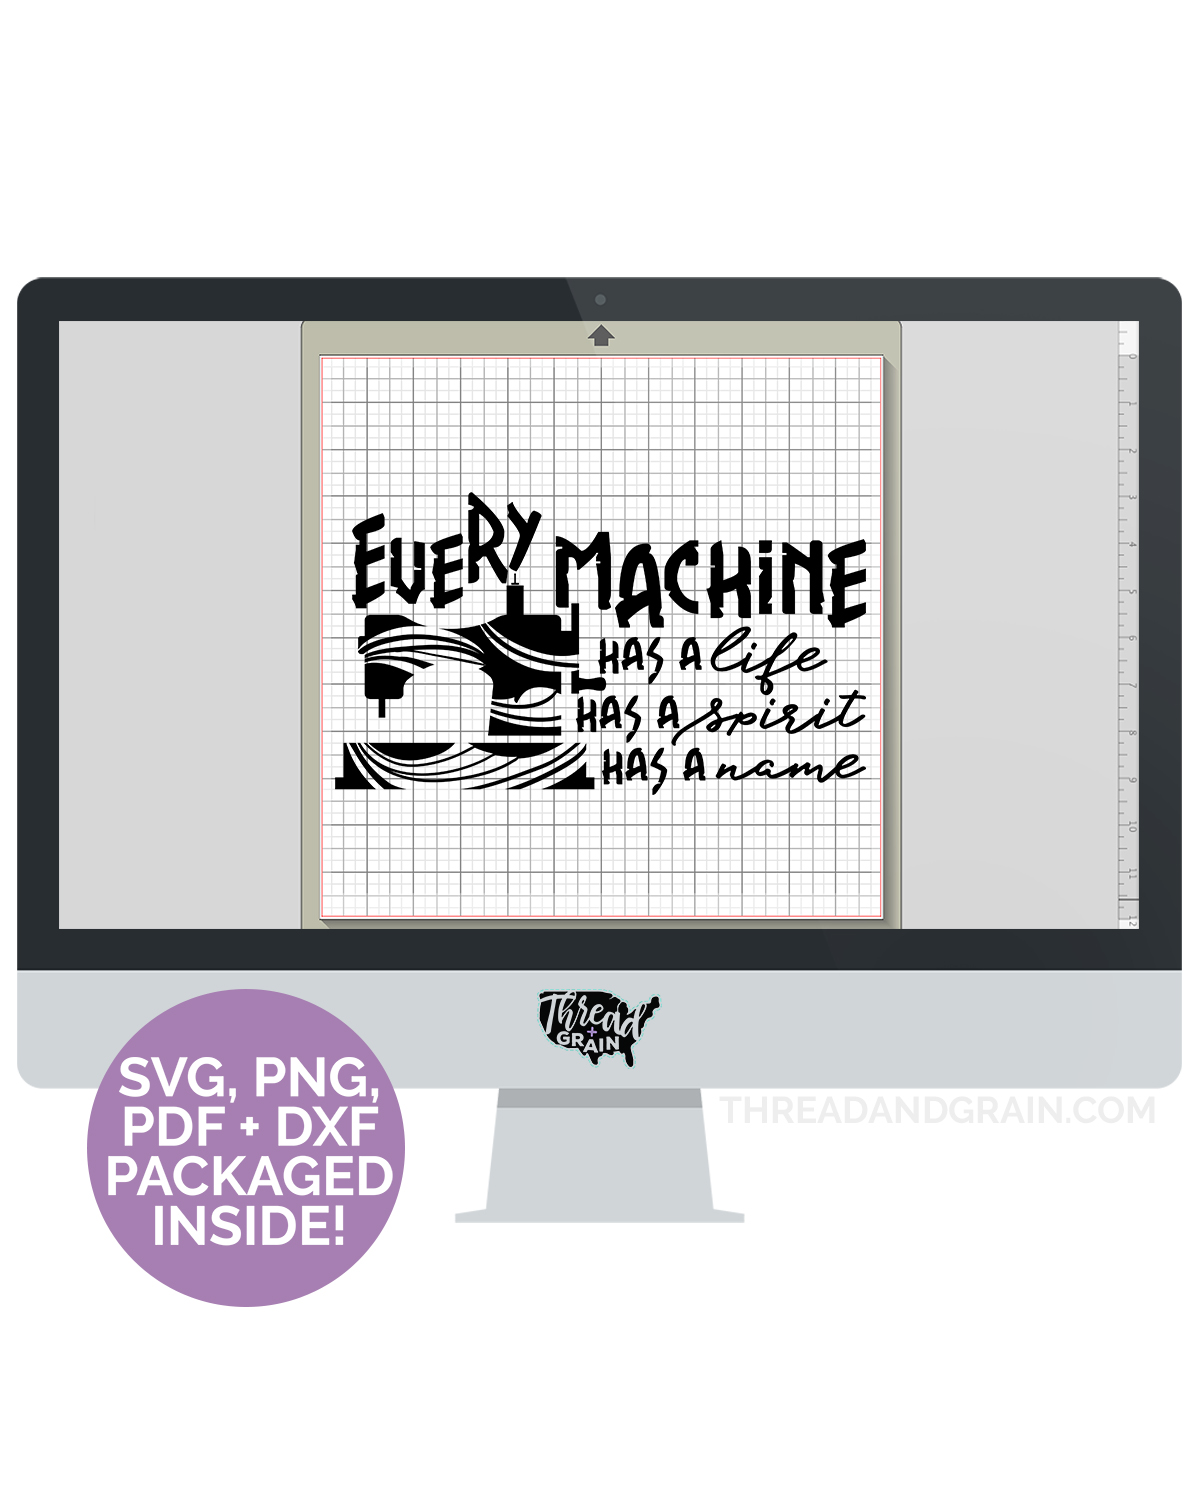 Every Machine DIGITAL CUT FILE